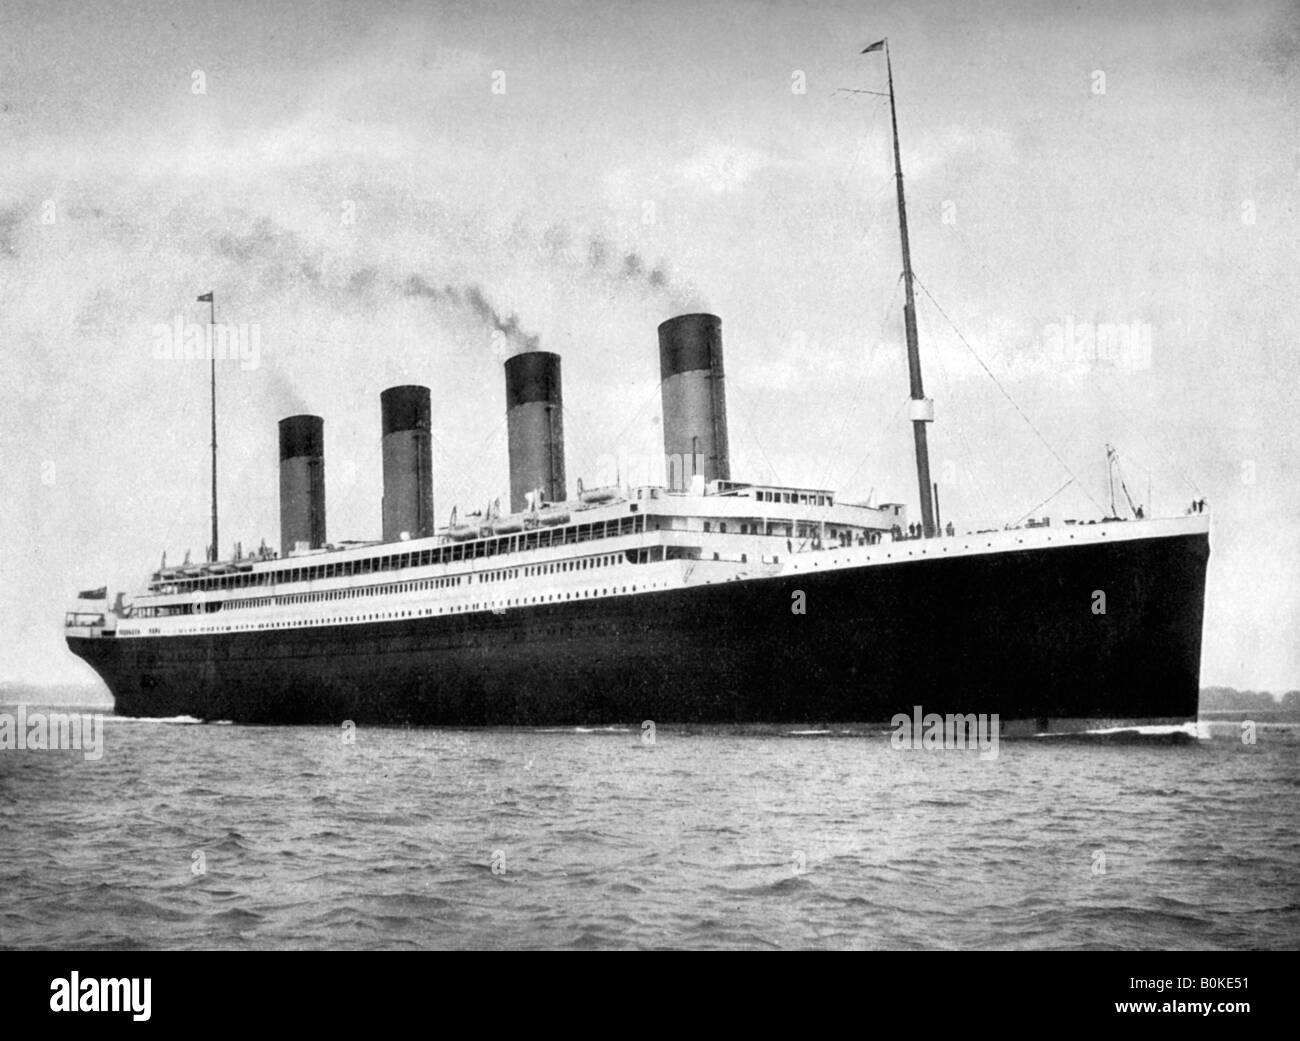 the long history of the ill fated lusitania Hit by a german submarine's torpedo, it sank in 18 minutes, with 1,200 casualties   political analysis, this fluently written item would seem a natural for history  buffs analogies between the wtc attacks and the ill-fated ship may be drawn by .